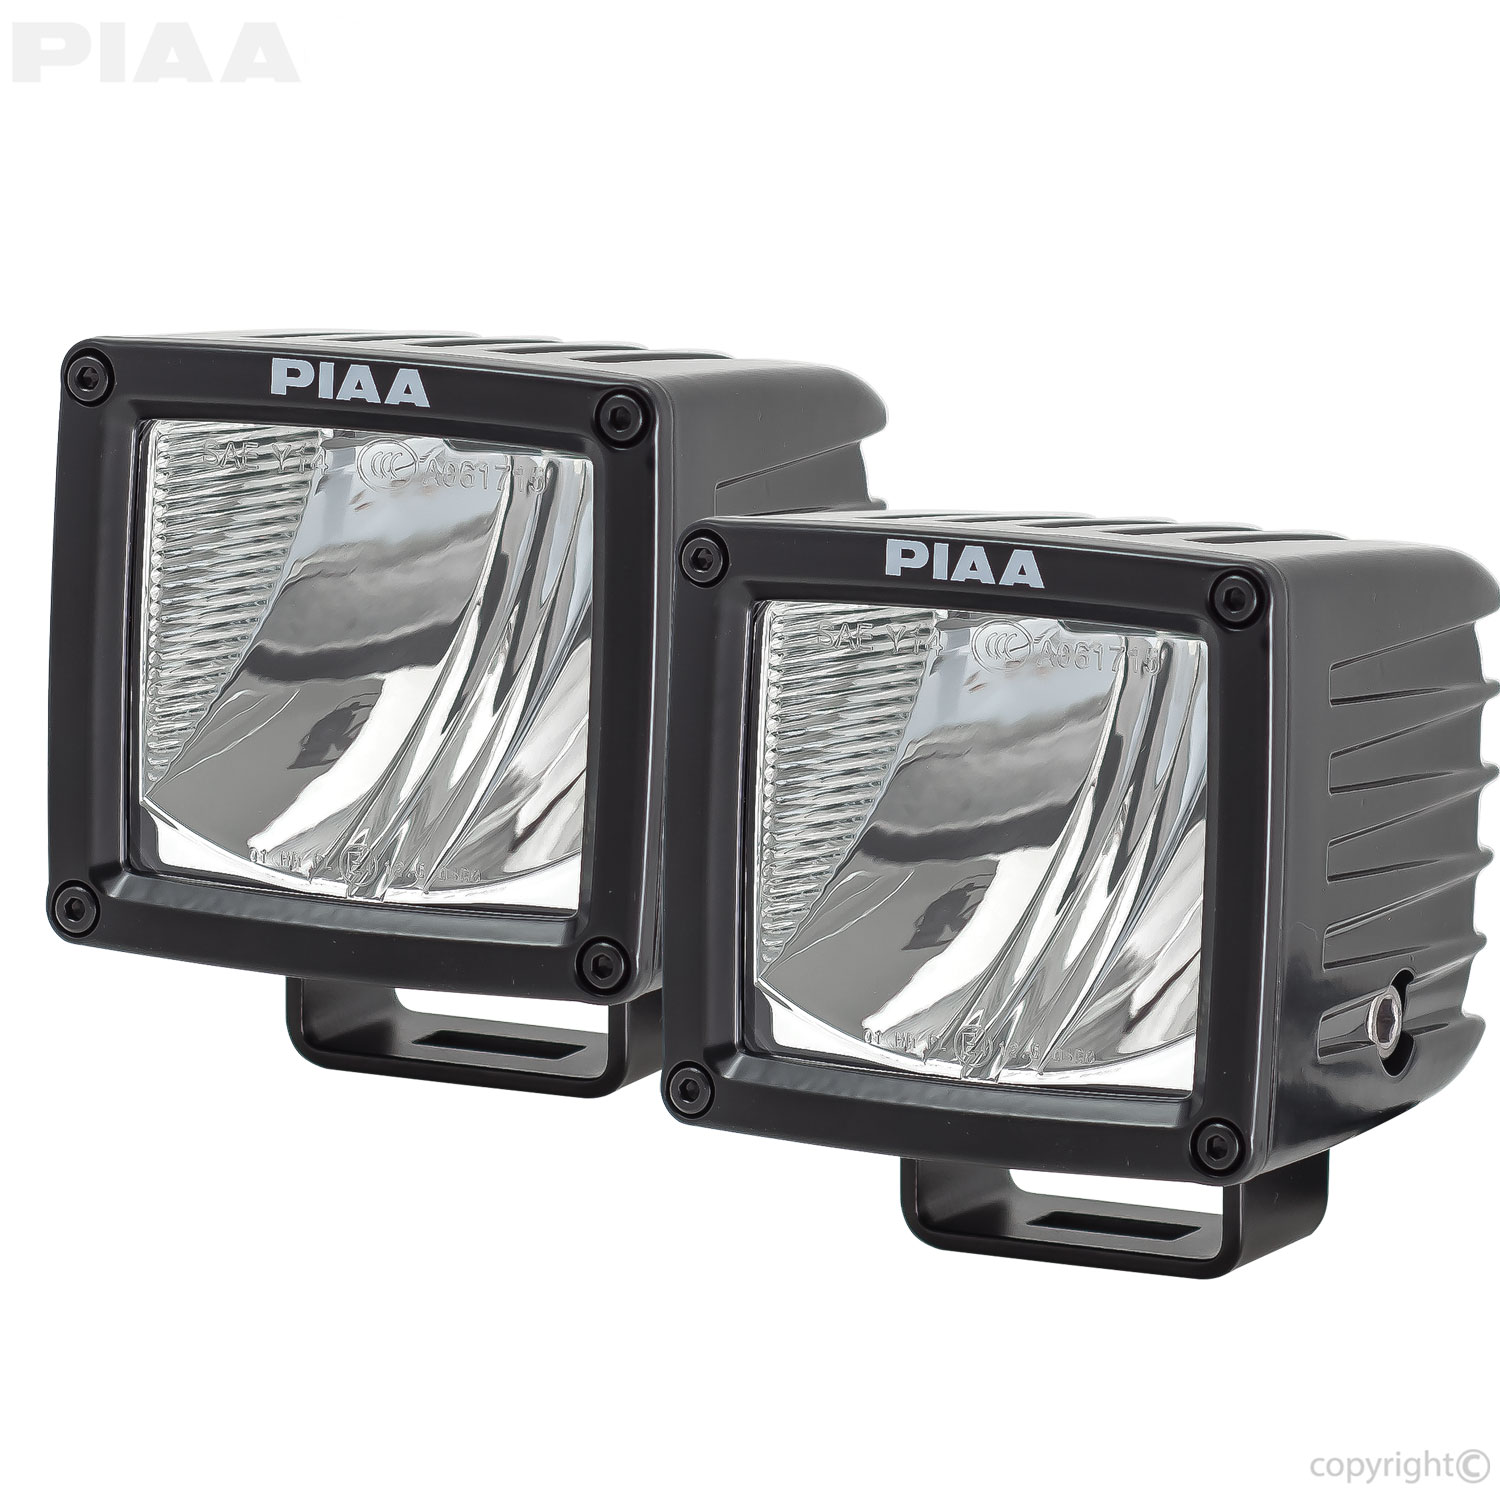 Piaa Atv Utv Lights Driving Fog Light Wiring Diagram Rf Series 3 Led Cube Beam Kit Sae Compliant